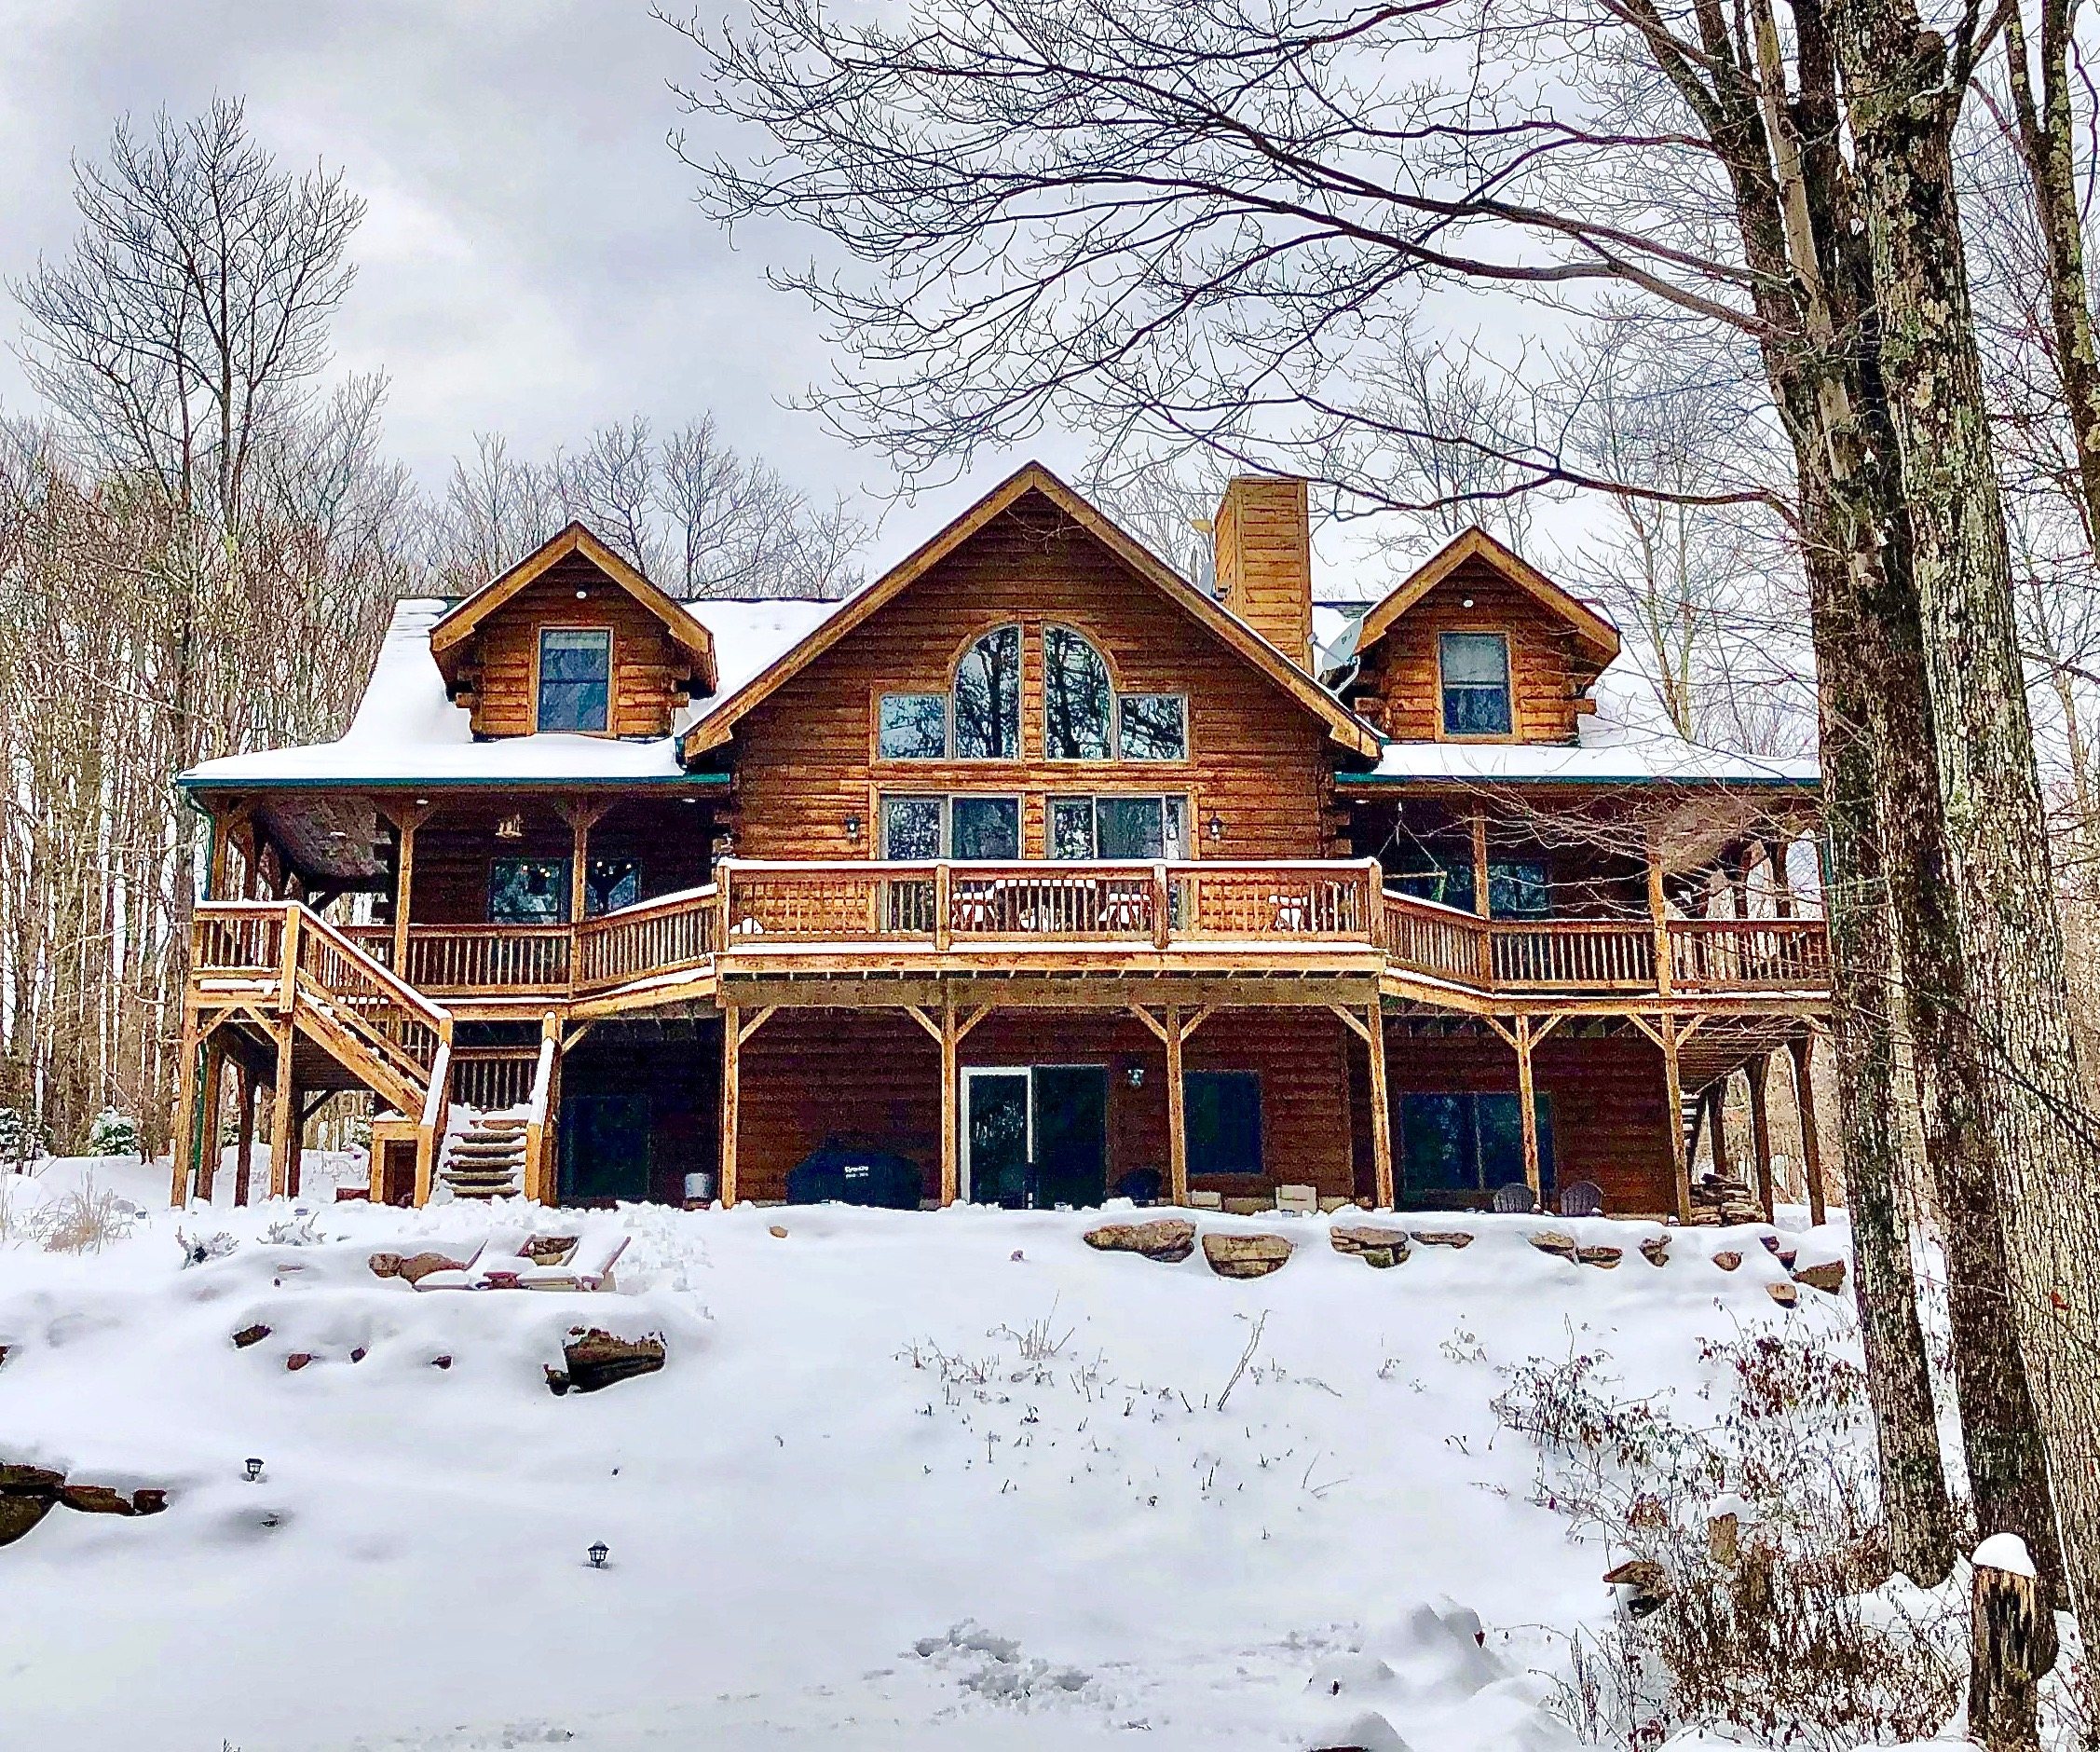 Clearwater Cabin in the Snow